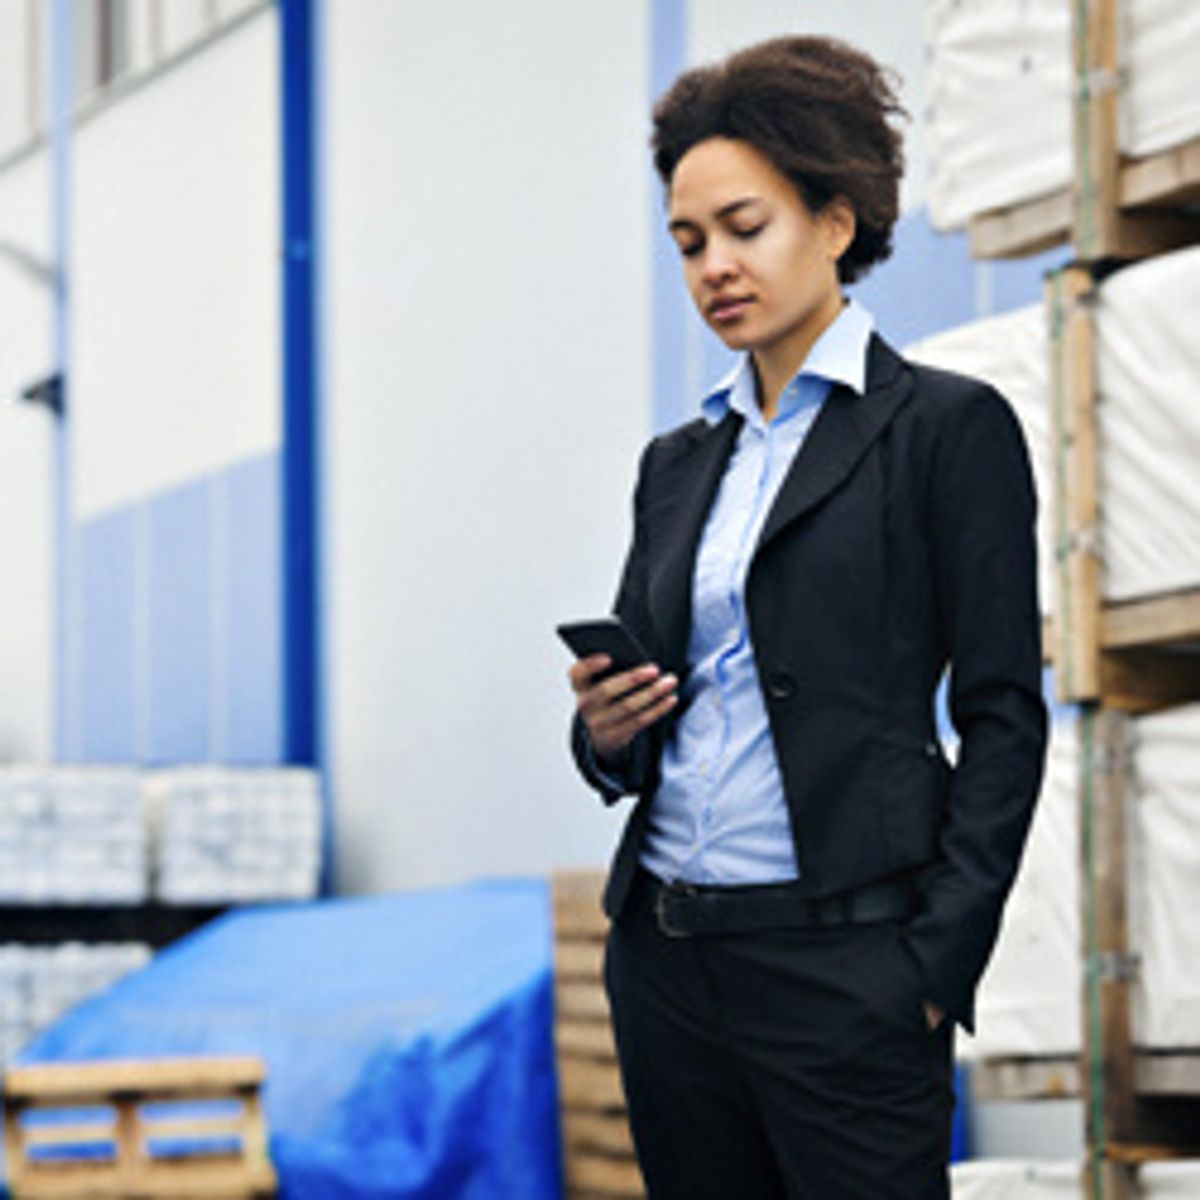 Woman looking at her phone in a warehouse environment